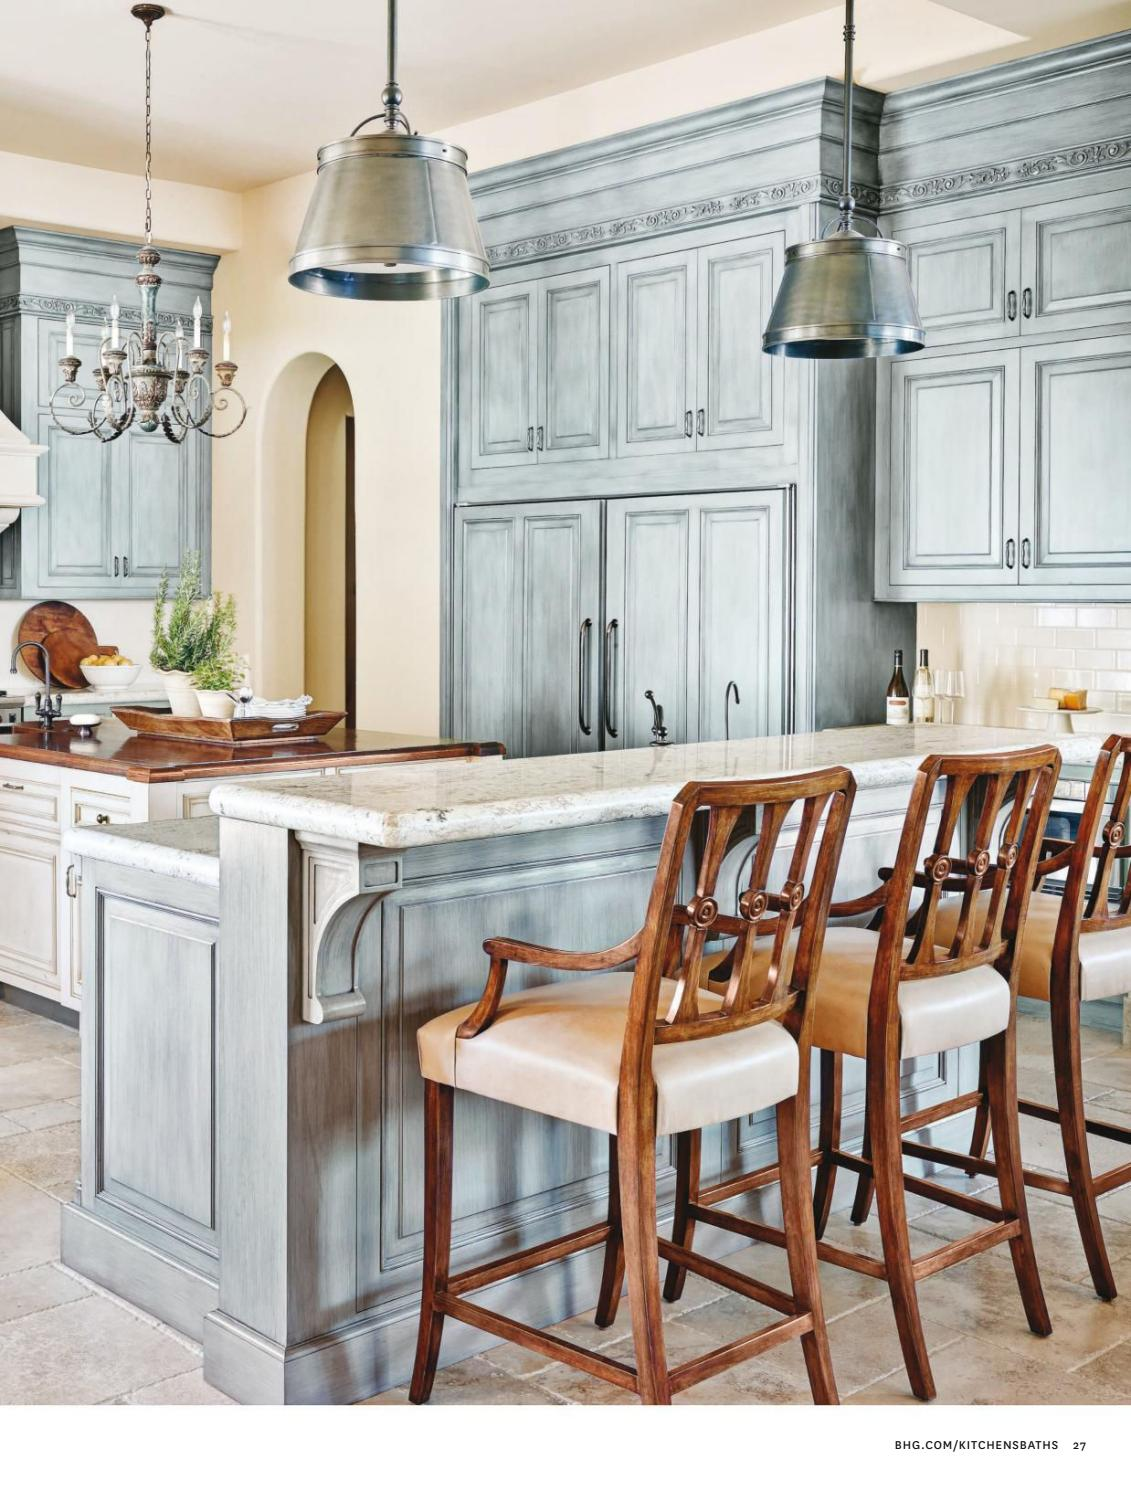 French Country Kitchen in Blue Color Scheme - Interiors By Color